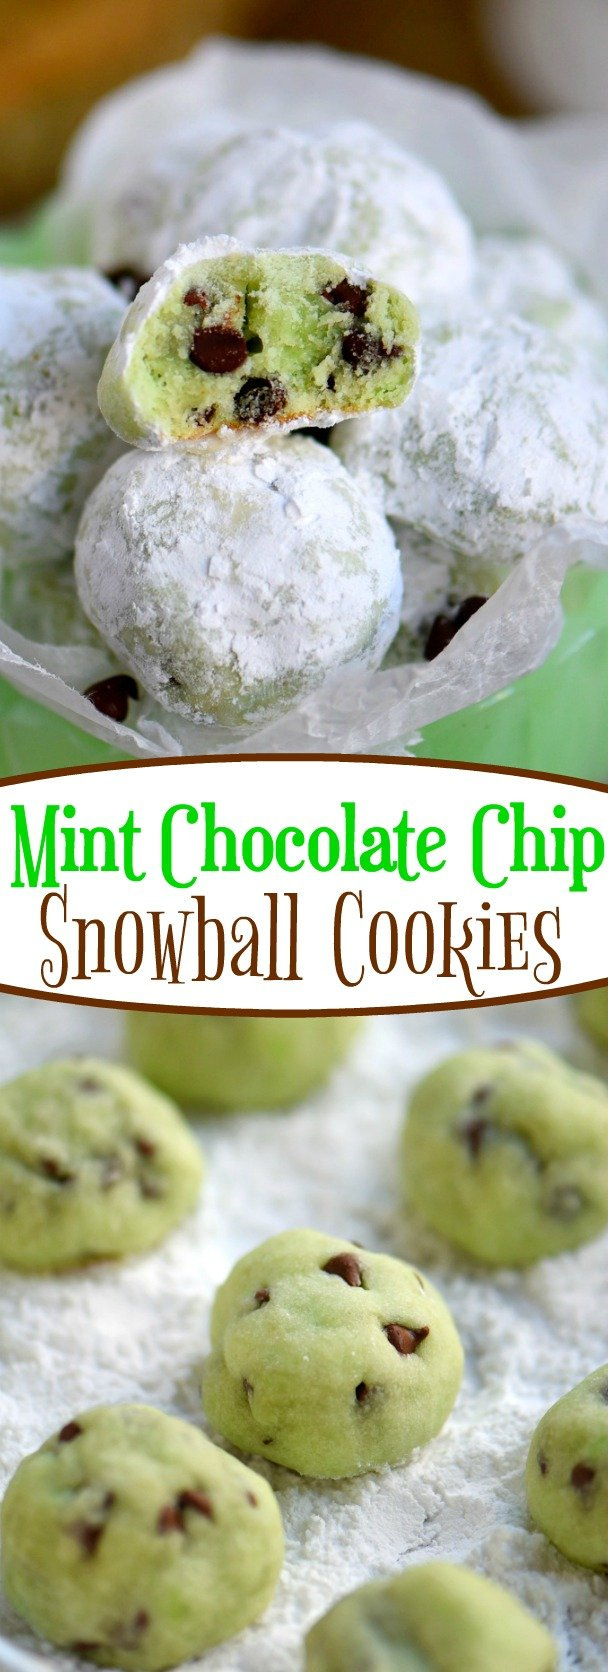 Mint Chocolate Chip Snowball Cookies - Mom On Timeout